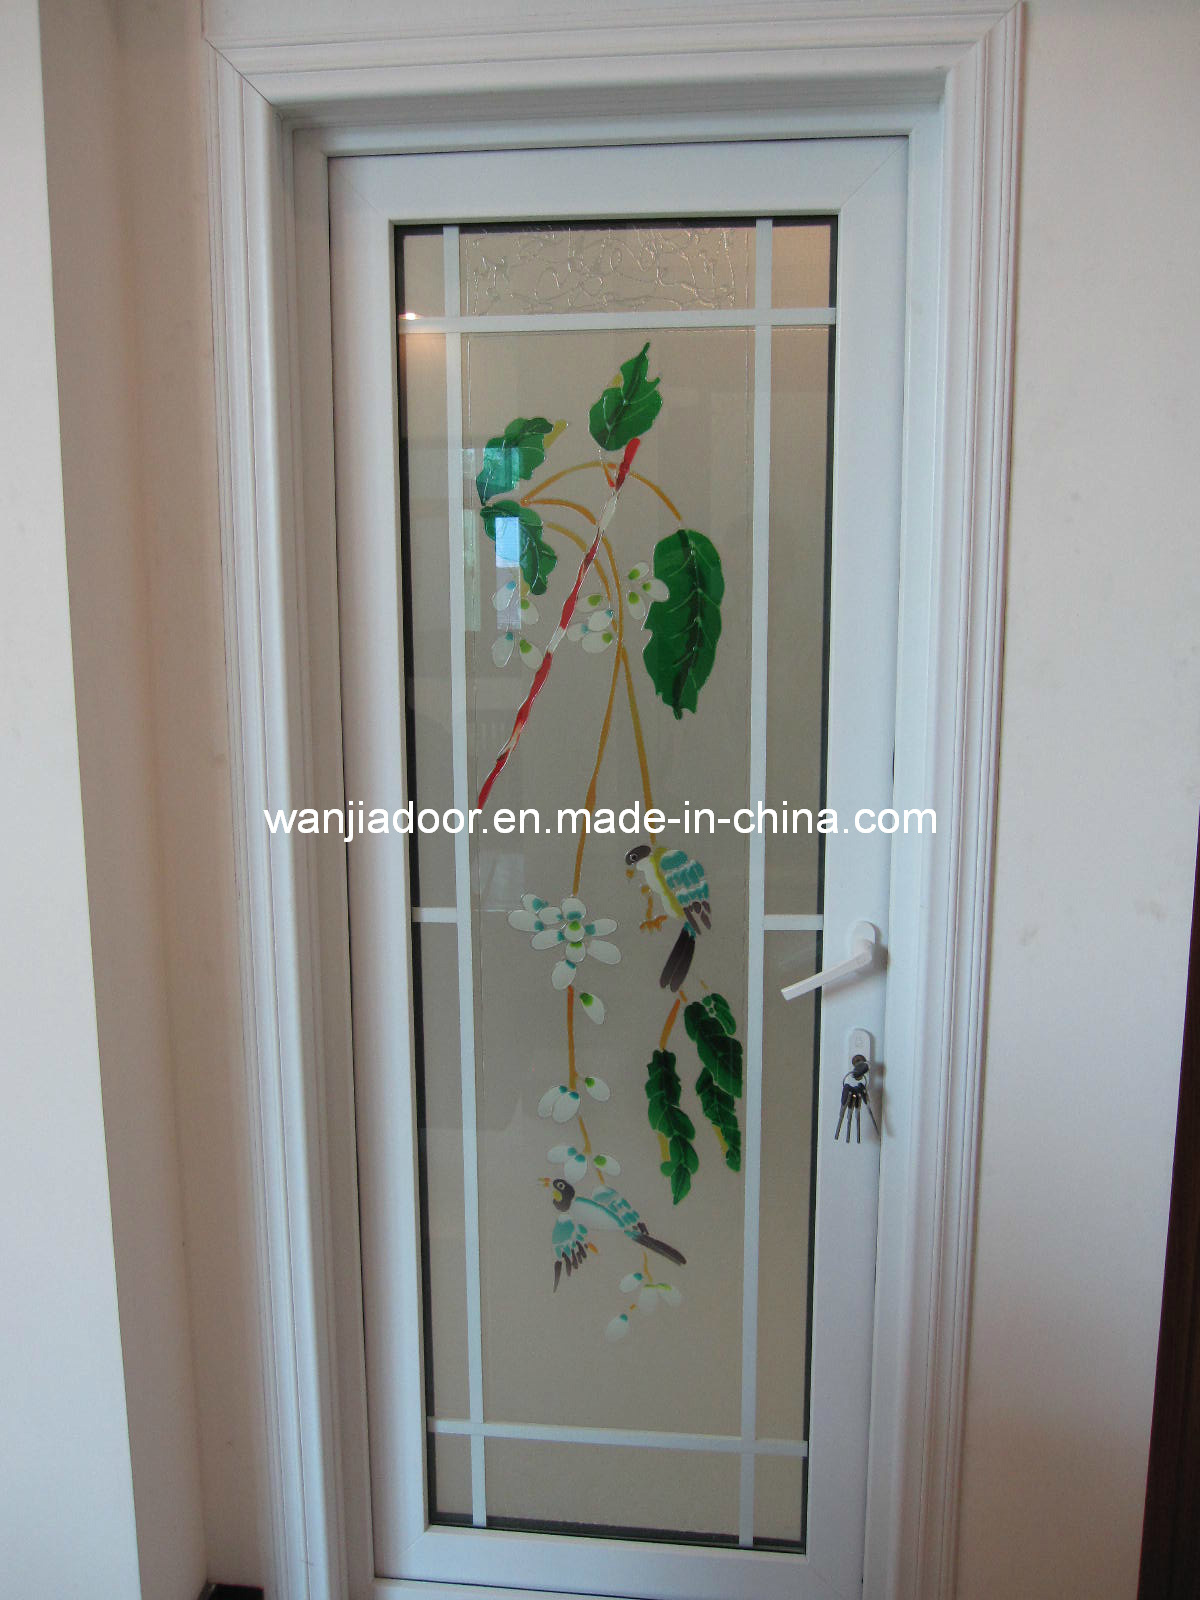 China Wanjia Pvc Door Wj P D016 Photos Pictures Made In